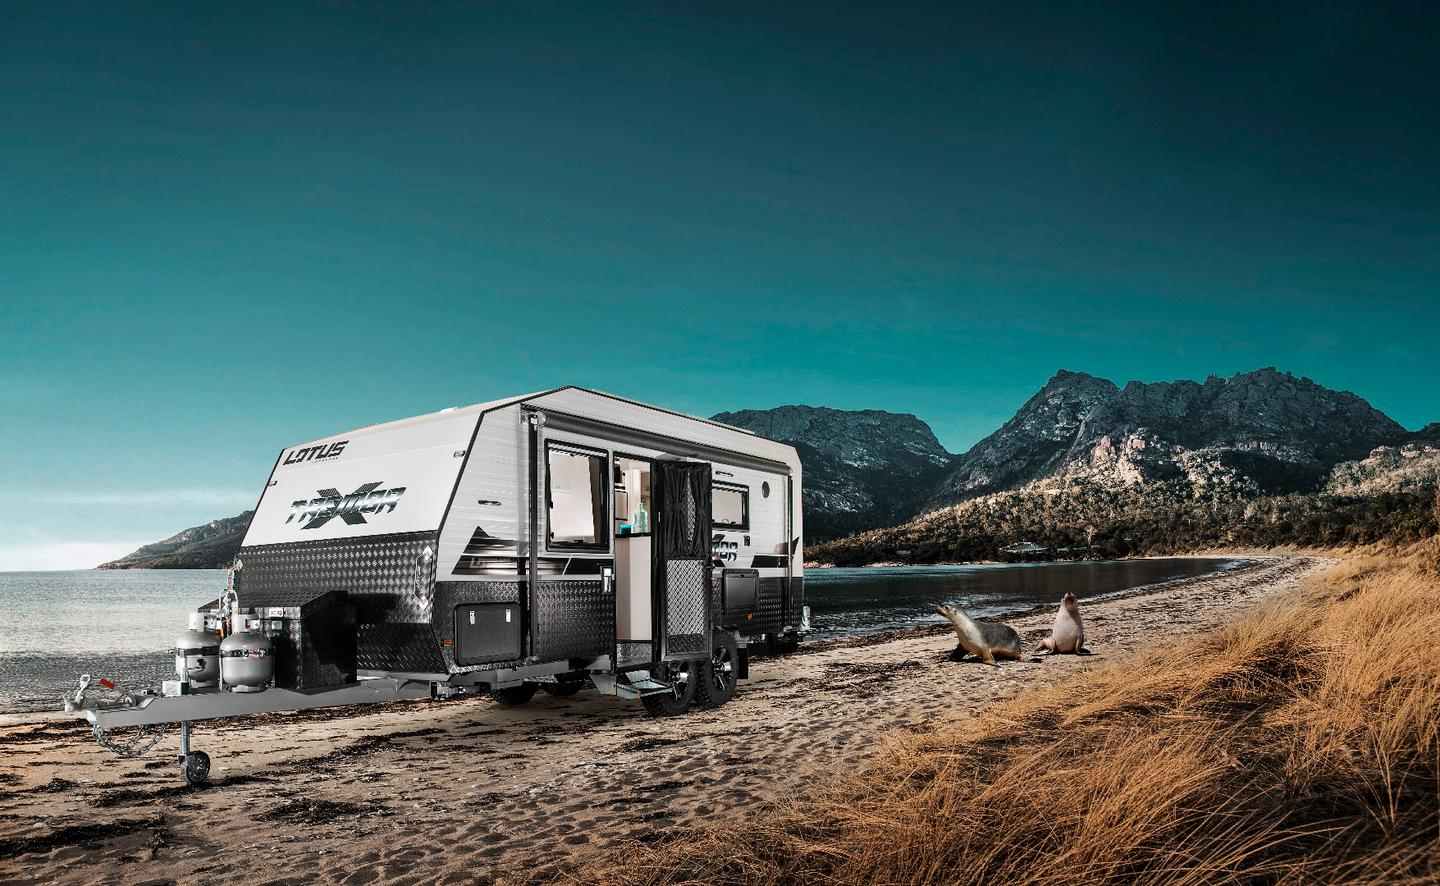 Lotus Caravans' Tremor combines exterior ruggedness with interior comfort